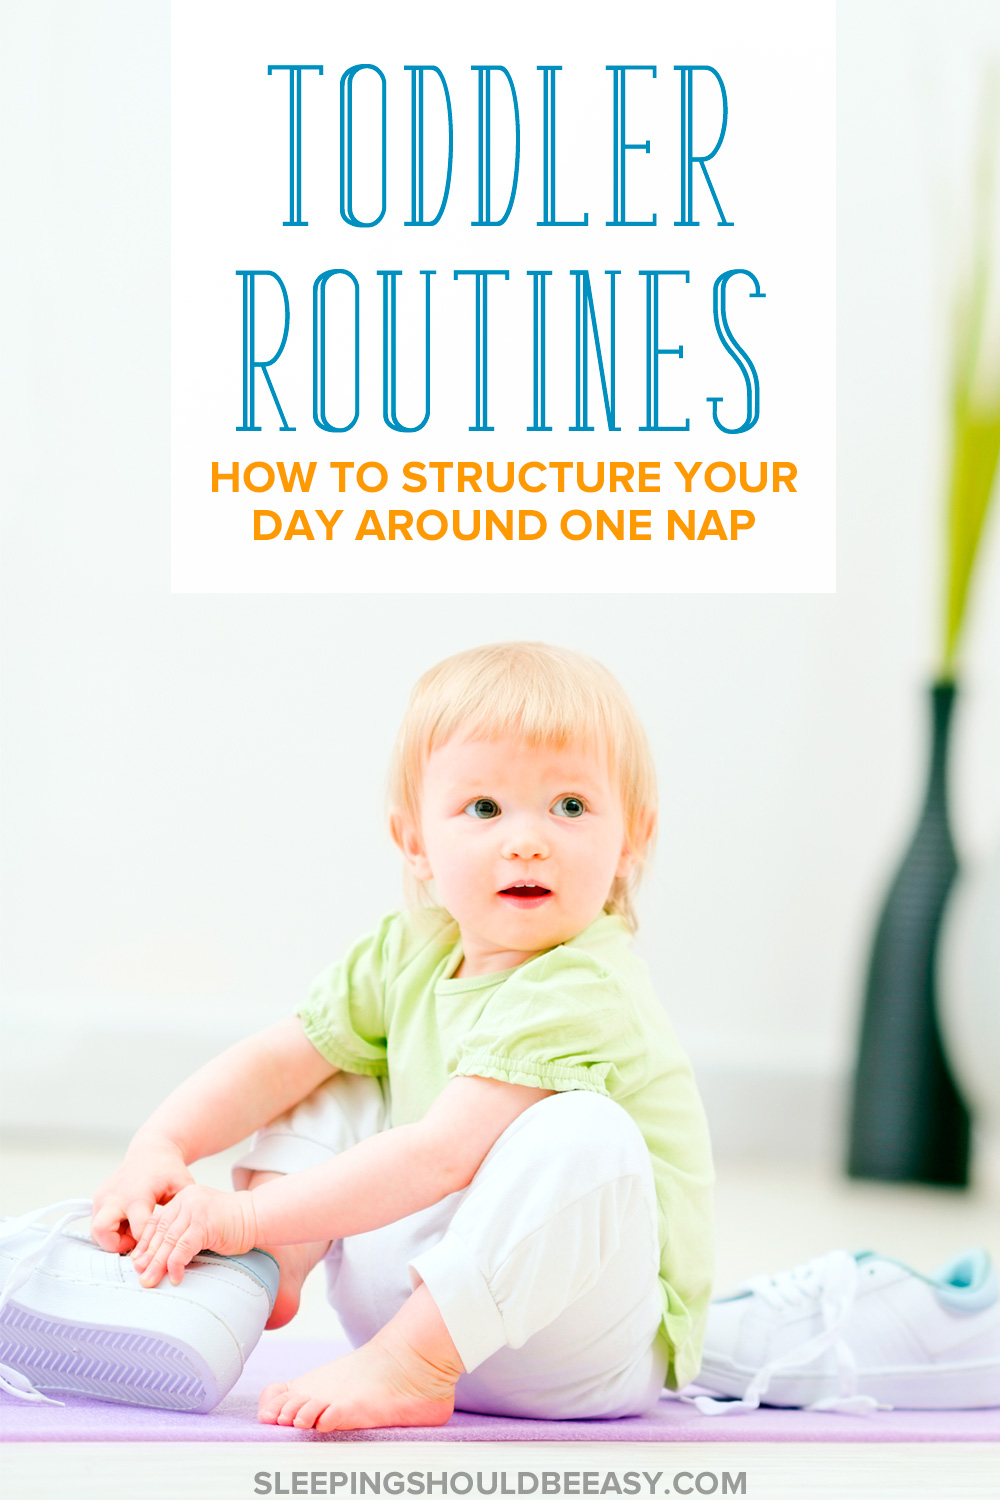 Toddler routines help your day run smoothly, encourage transitions and avoid meltdowns. Here's how to structure your day around one nap.